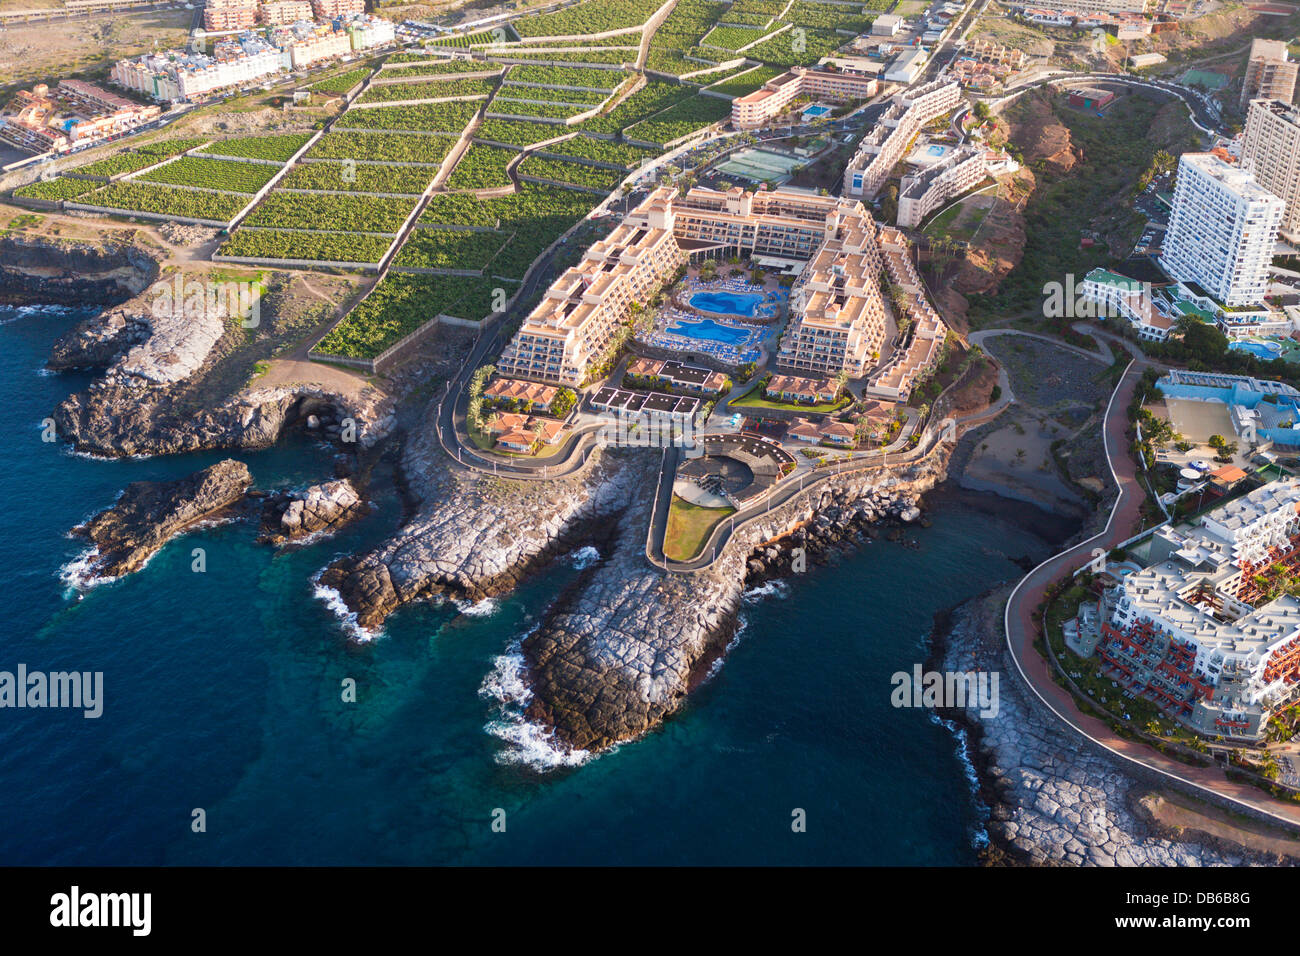 Hotel Facilities in South of Tenerife, Tenerife, Canary Islands, Spain - Stock Image